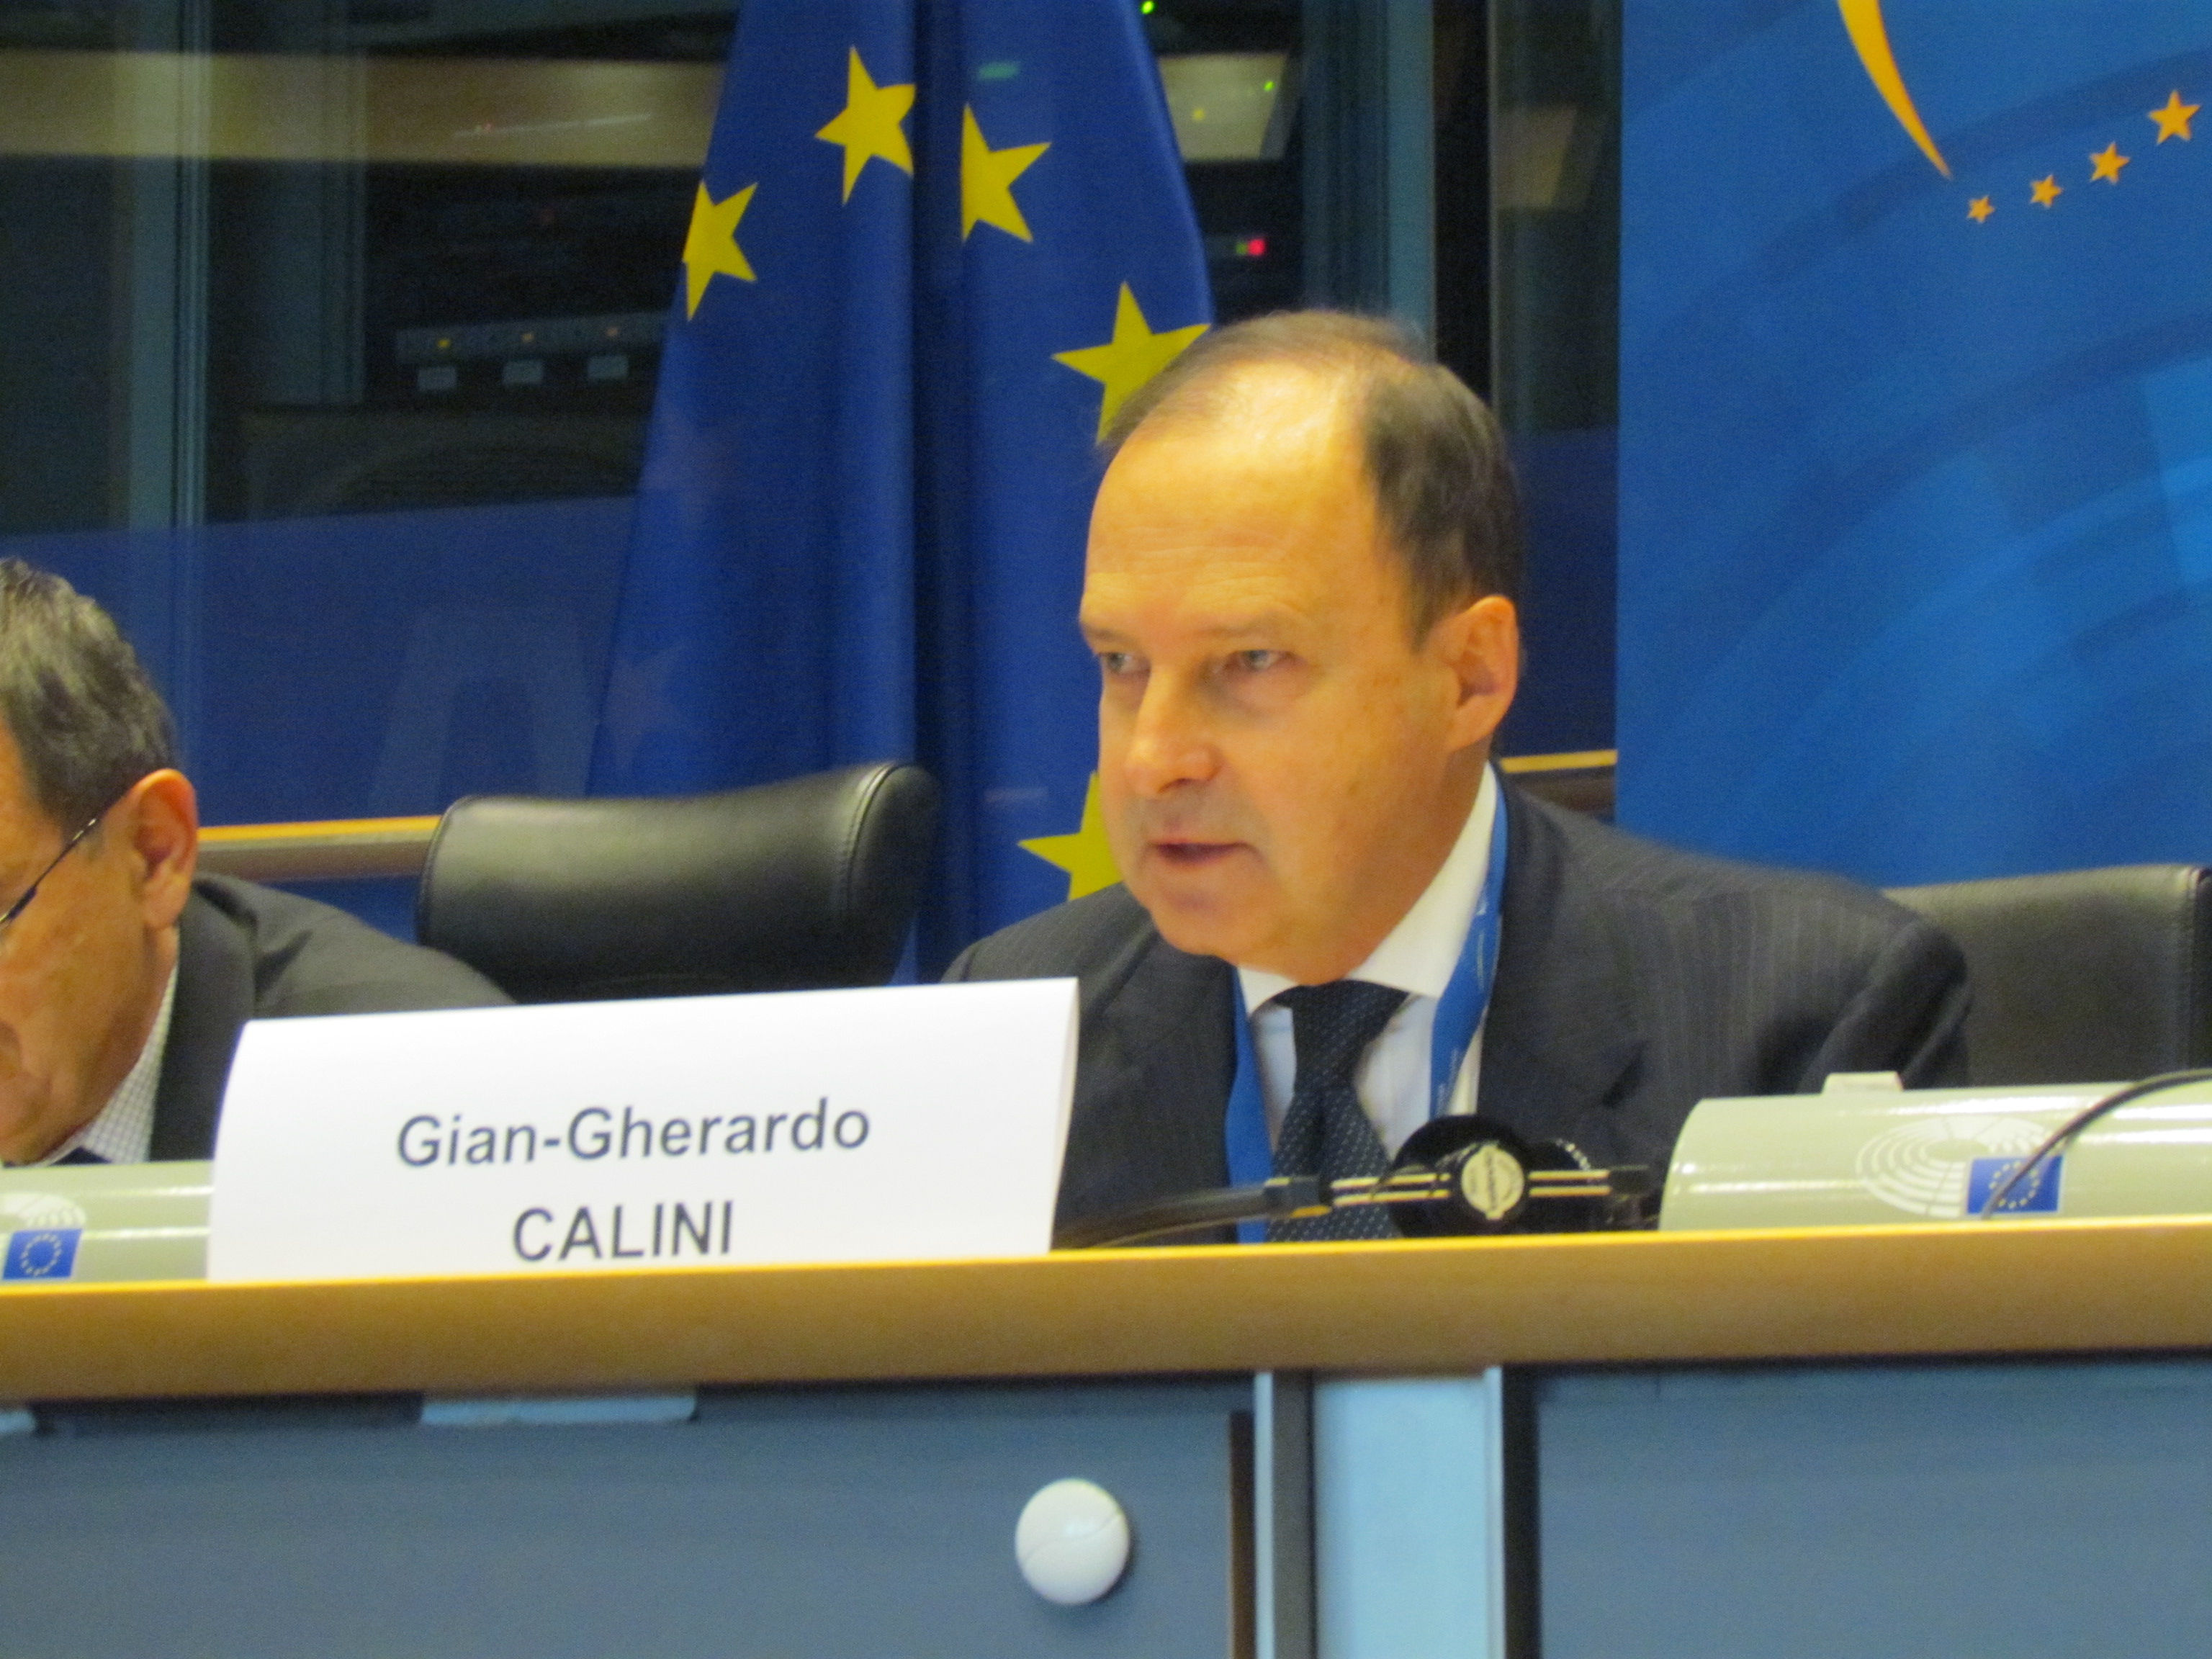 The GSA's Gian-Gherardo Calini speaking at the EBAA debate